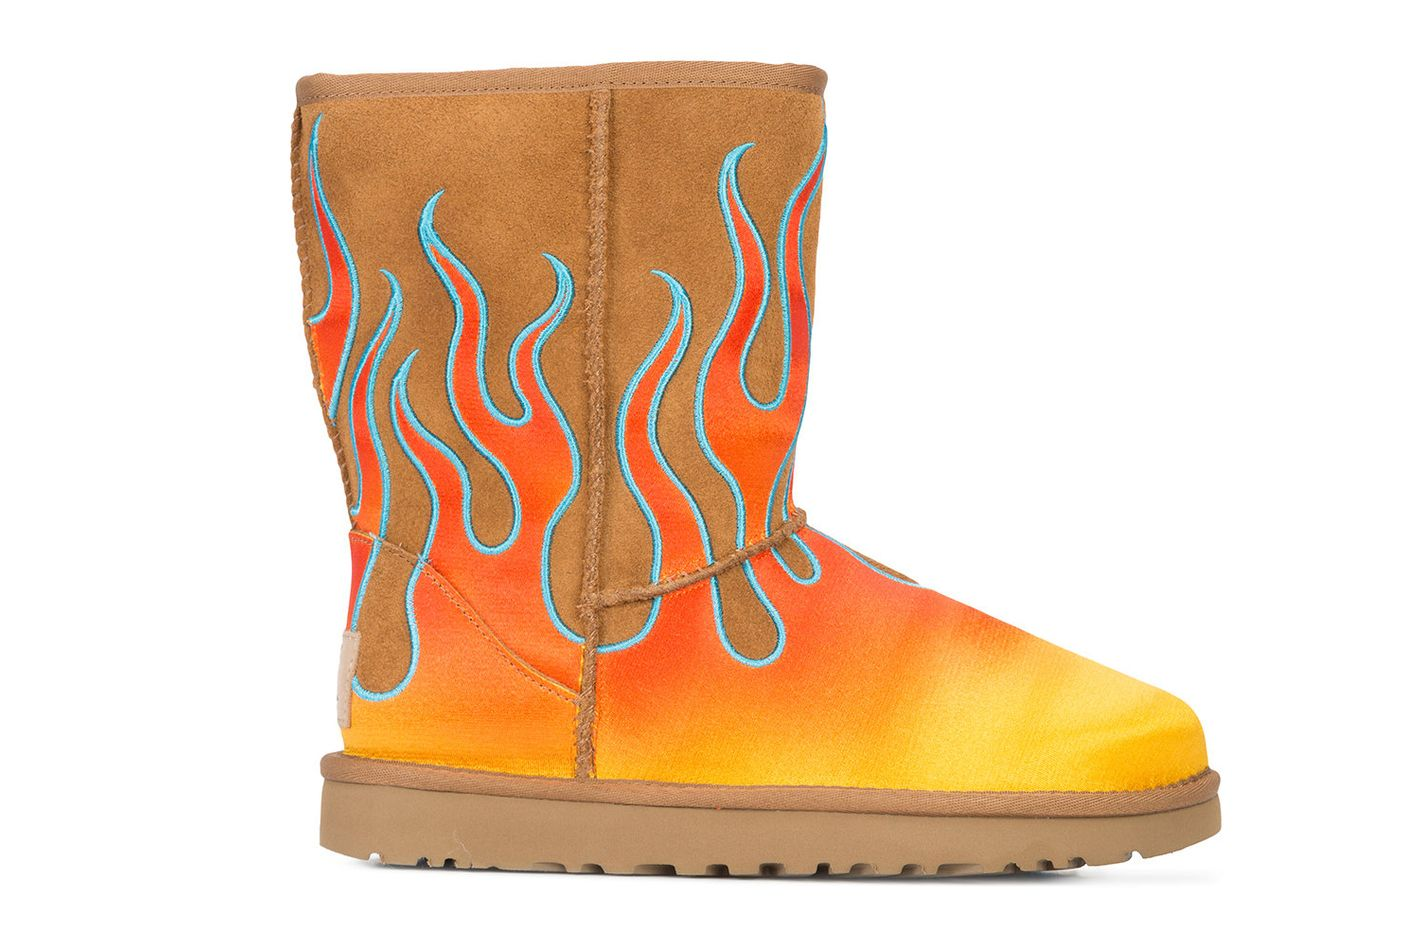 UGG x Jeremy Scott Flame Boots